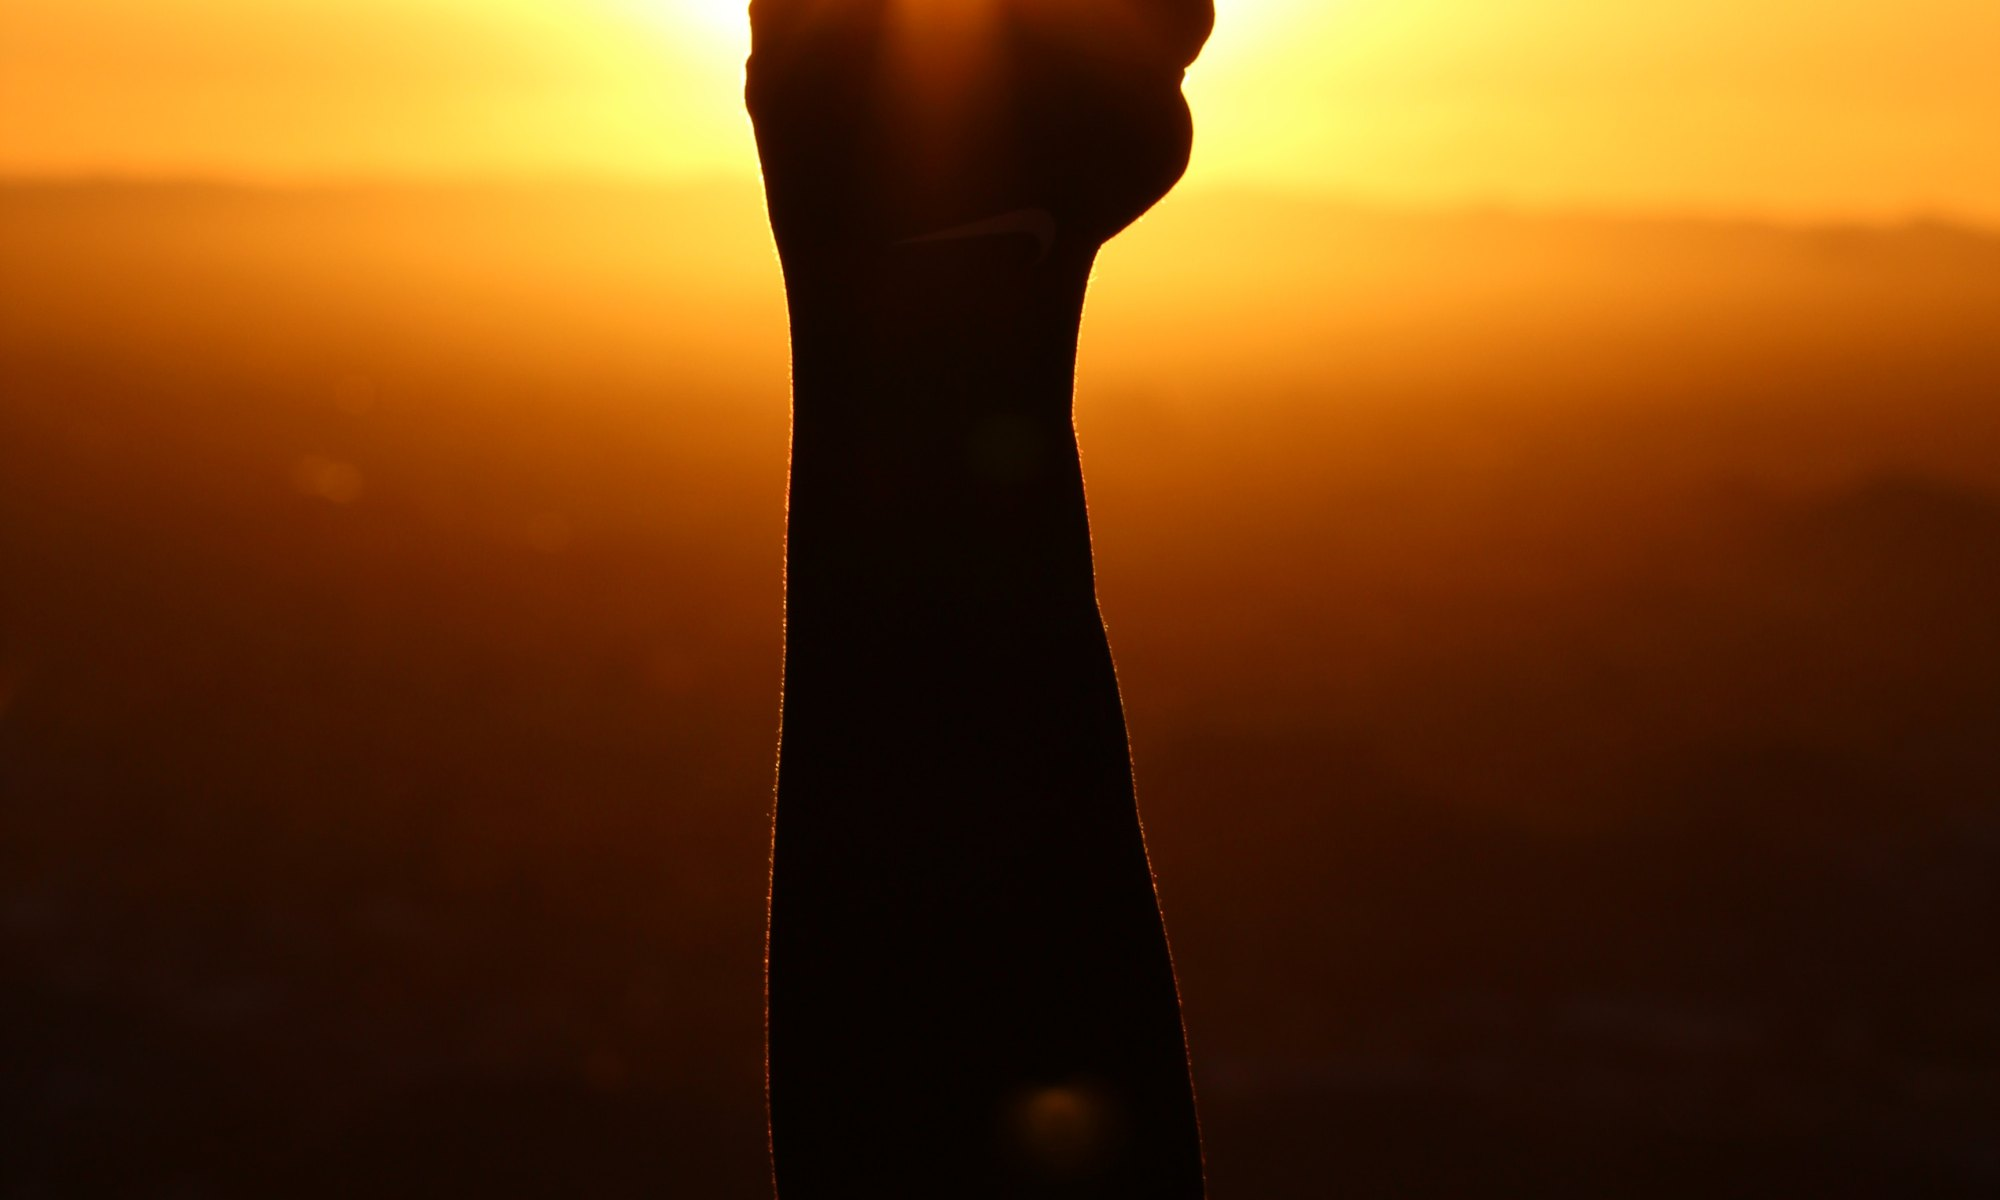 Fist pump directed towards the sunset after achieving your goals